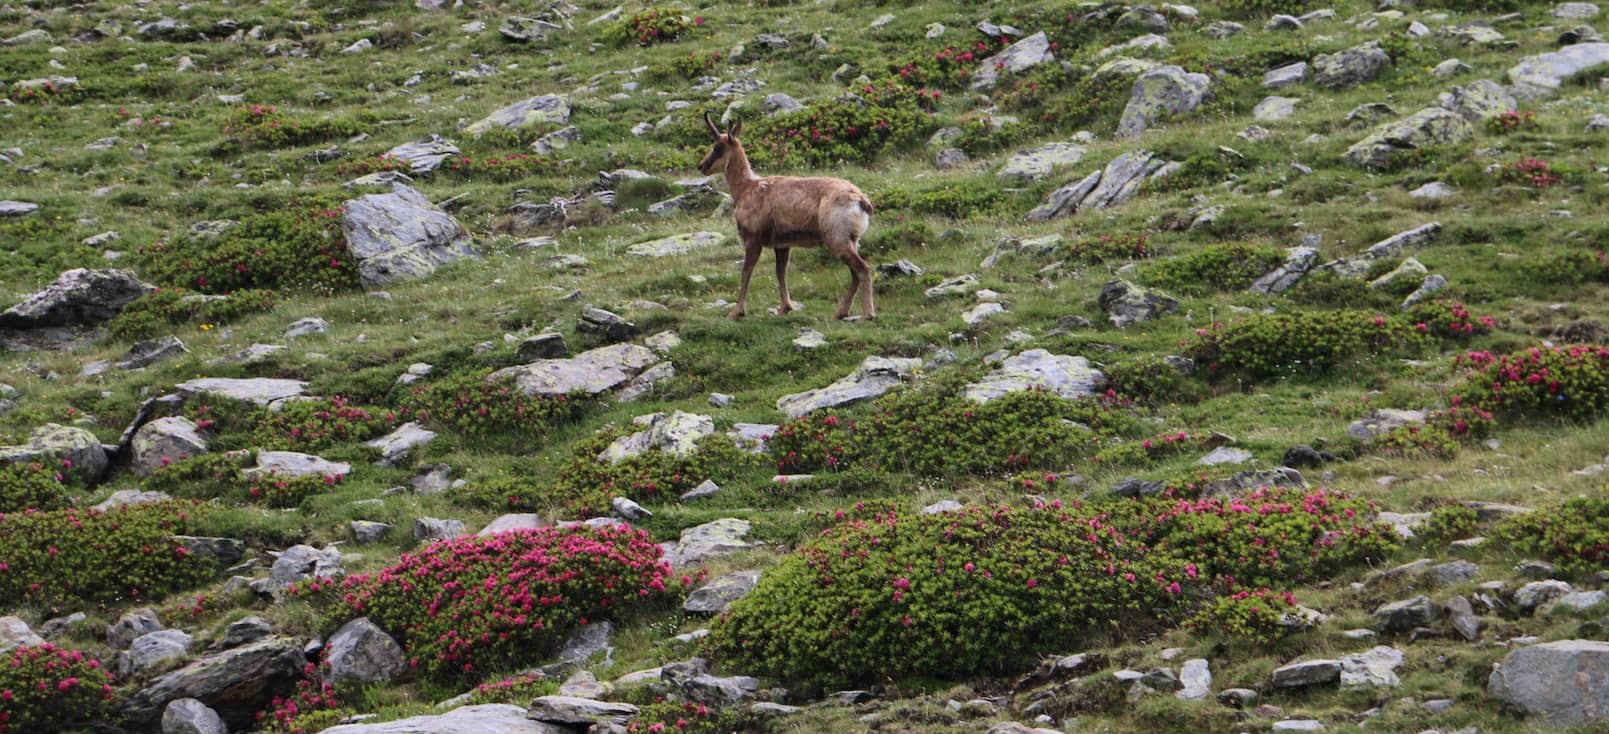 Chamois in the middle of an alpine meadow with abundant rhododendron.